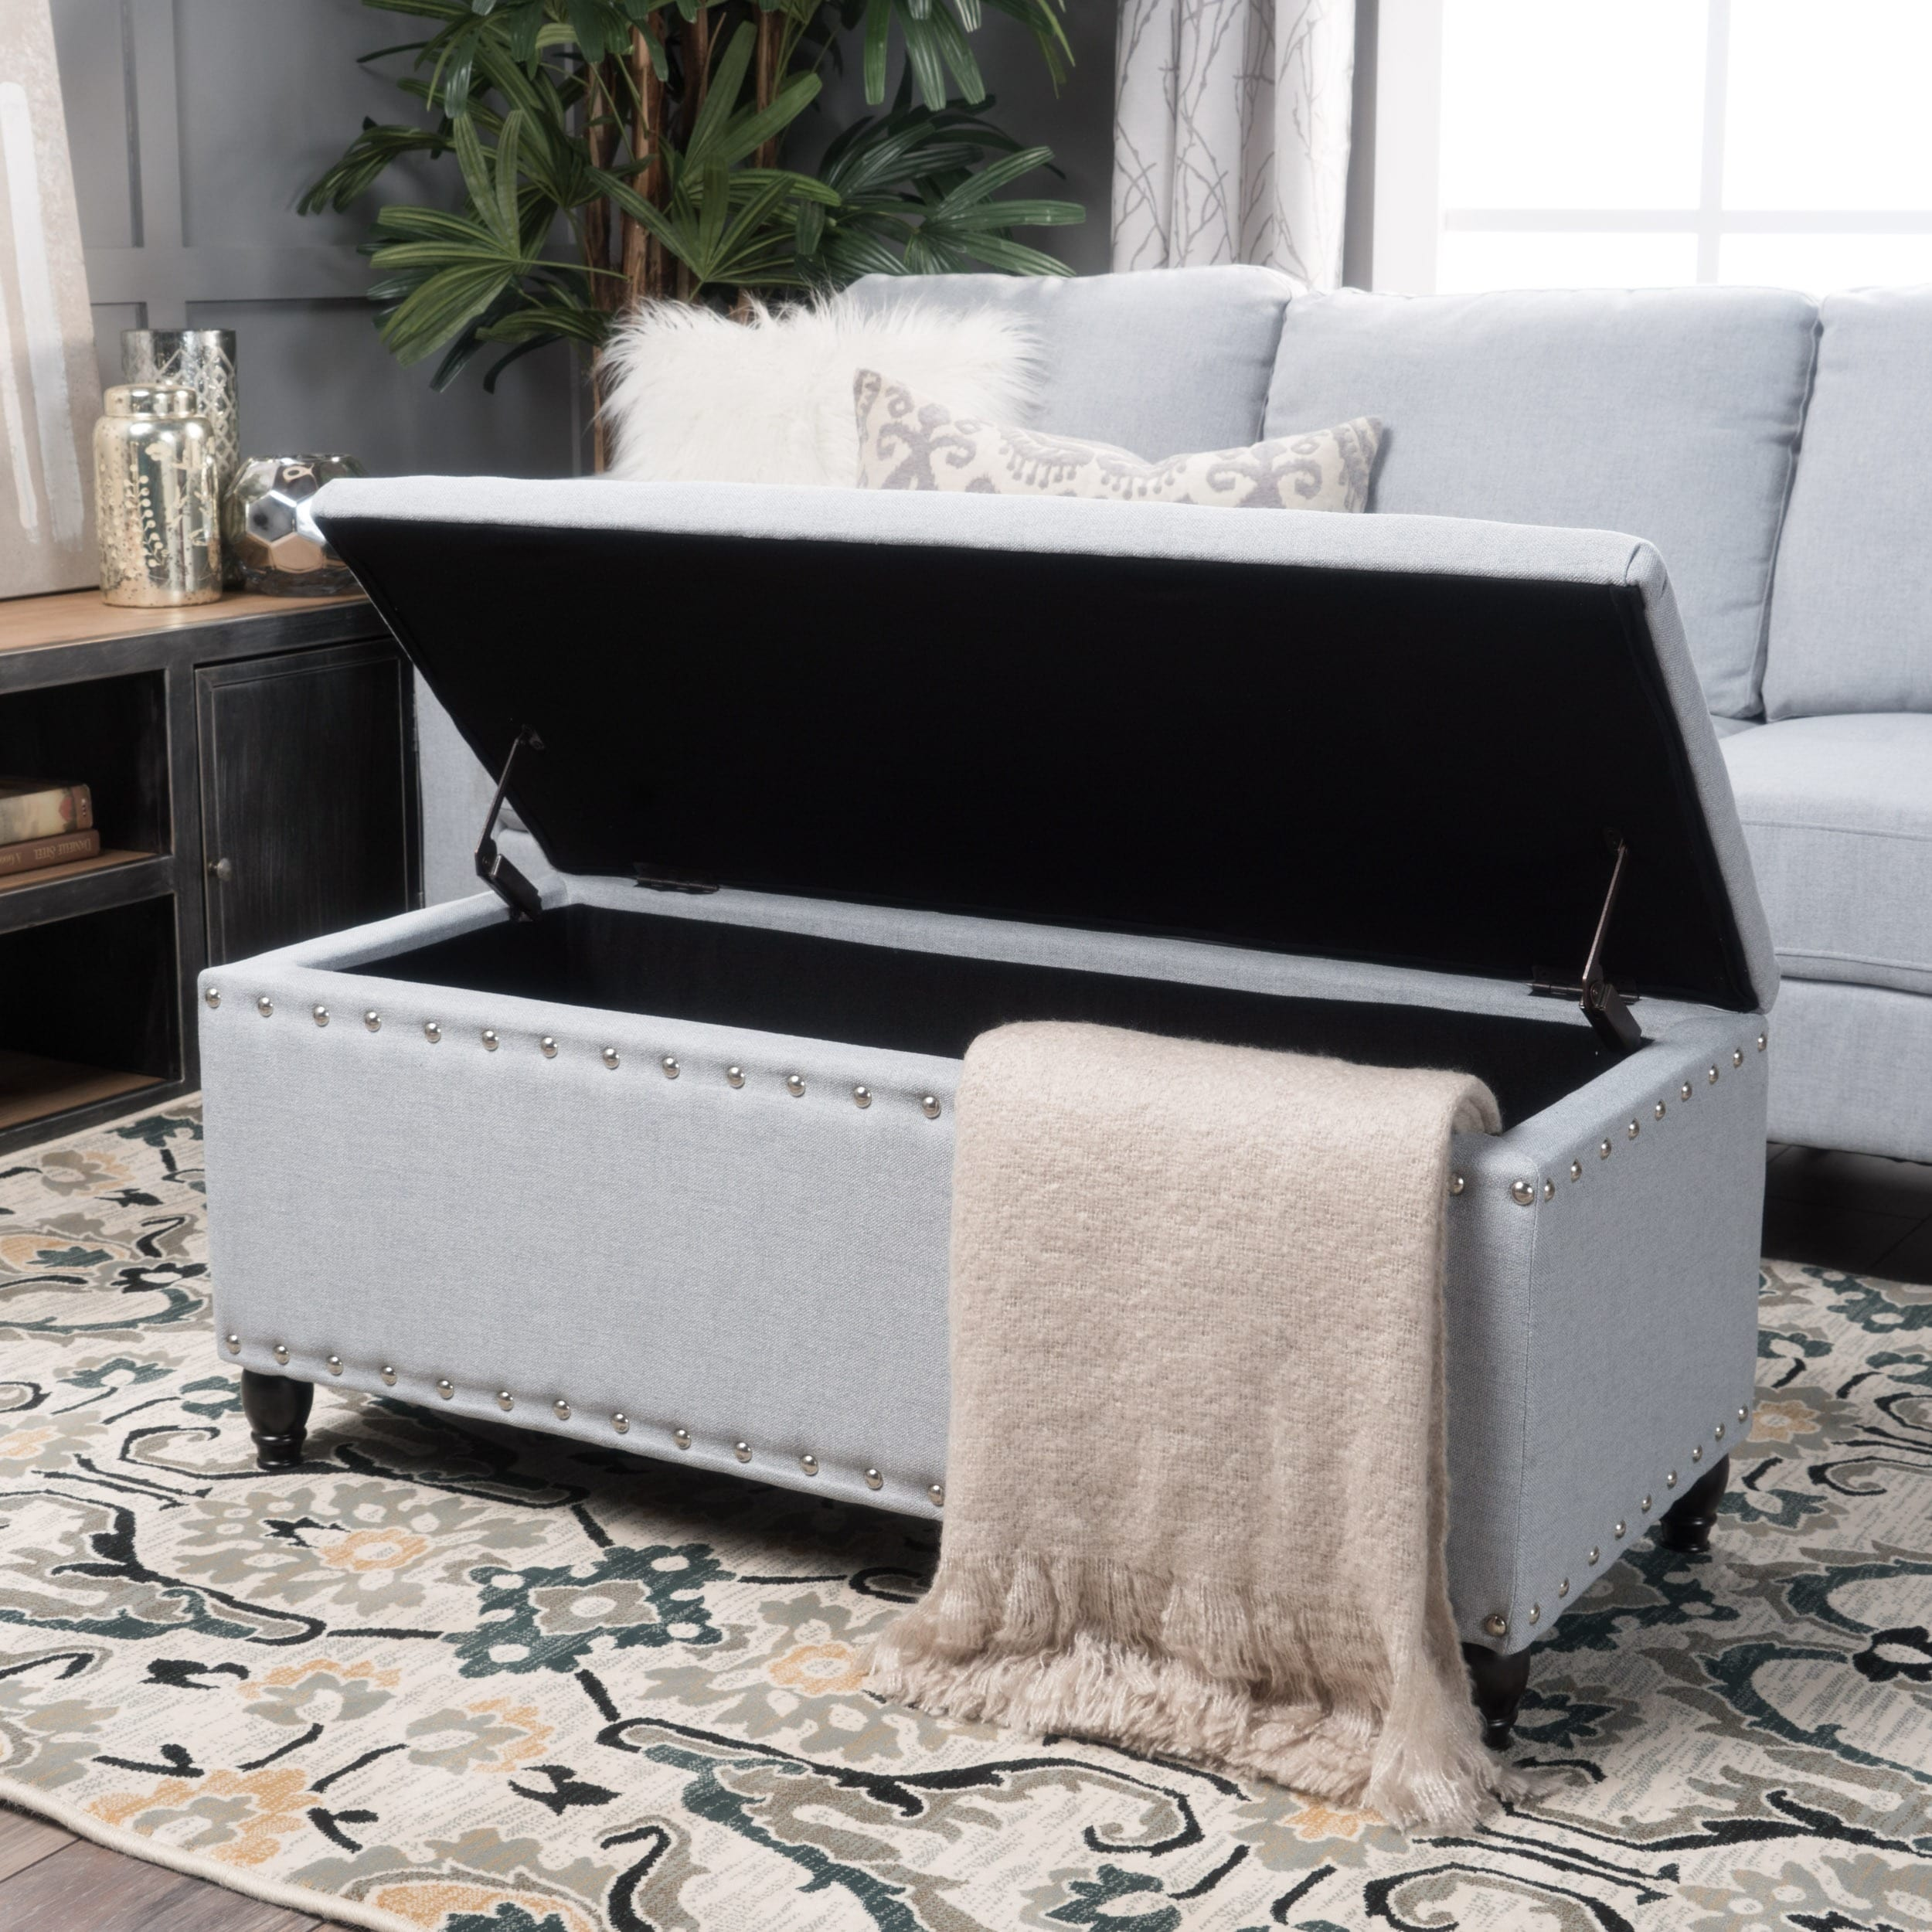 upholstered nurseresumeorg fabric blanket bench l large leather modern brown round tufted ottoman storage table white bedroom coffee low extra tray covered with